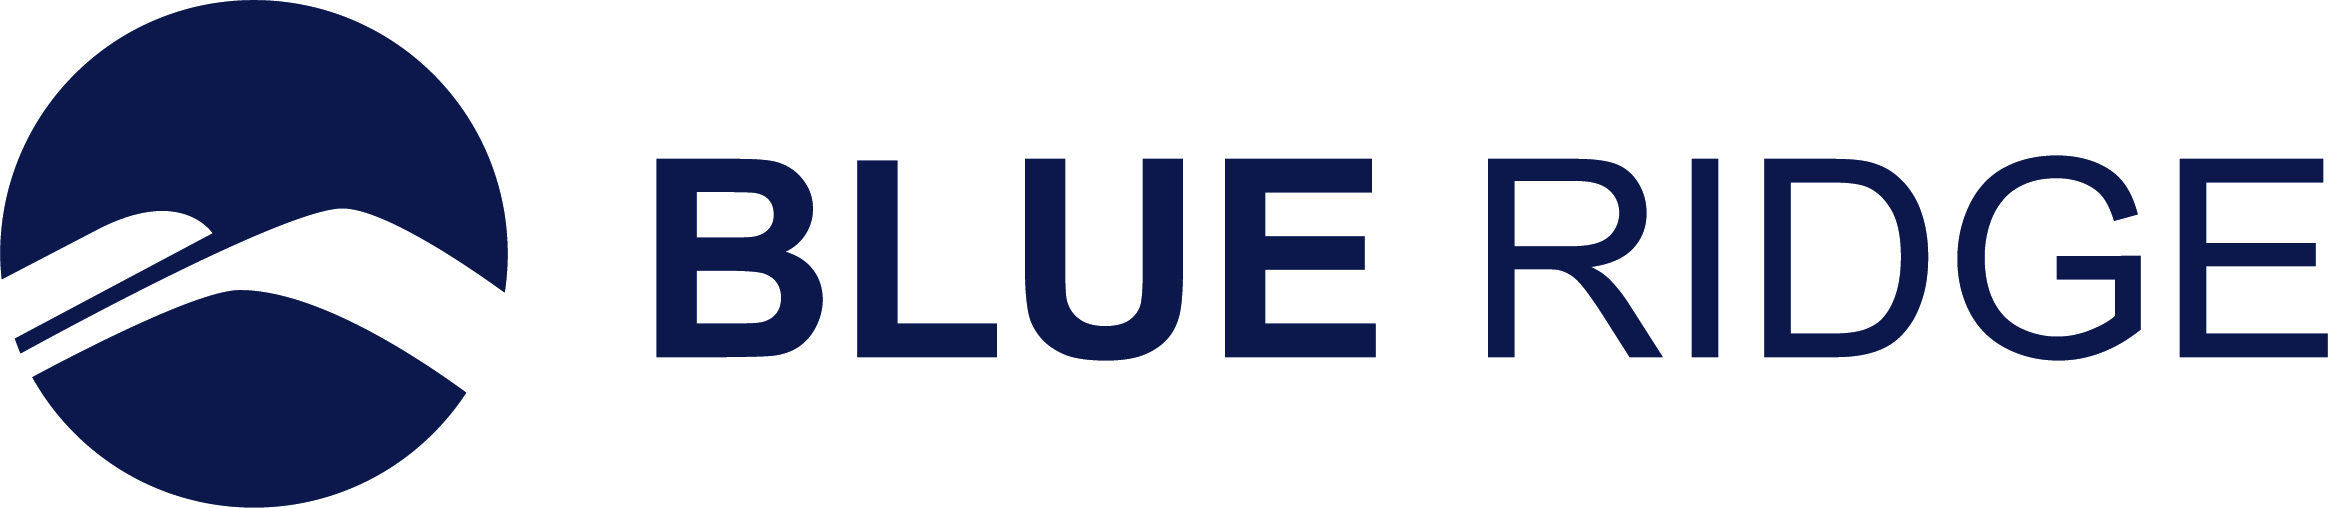 Blue Ridge CMO Ed Rusch Interview in PYMNTS.com Discusses Integrating Pricing Strategy